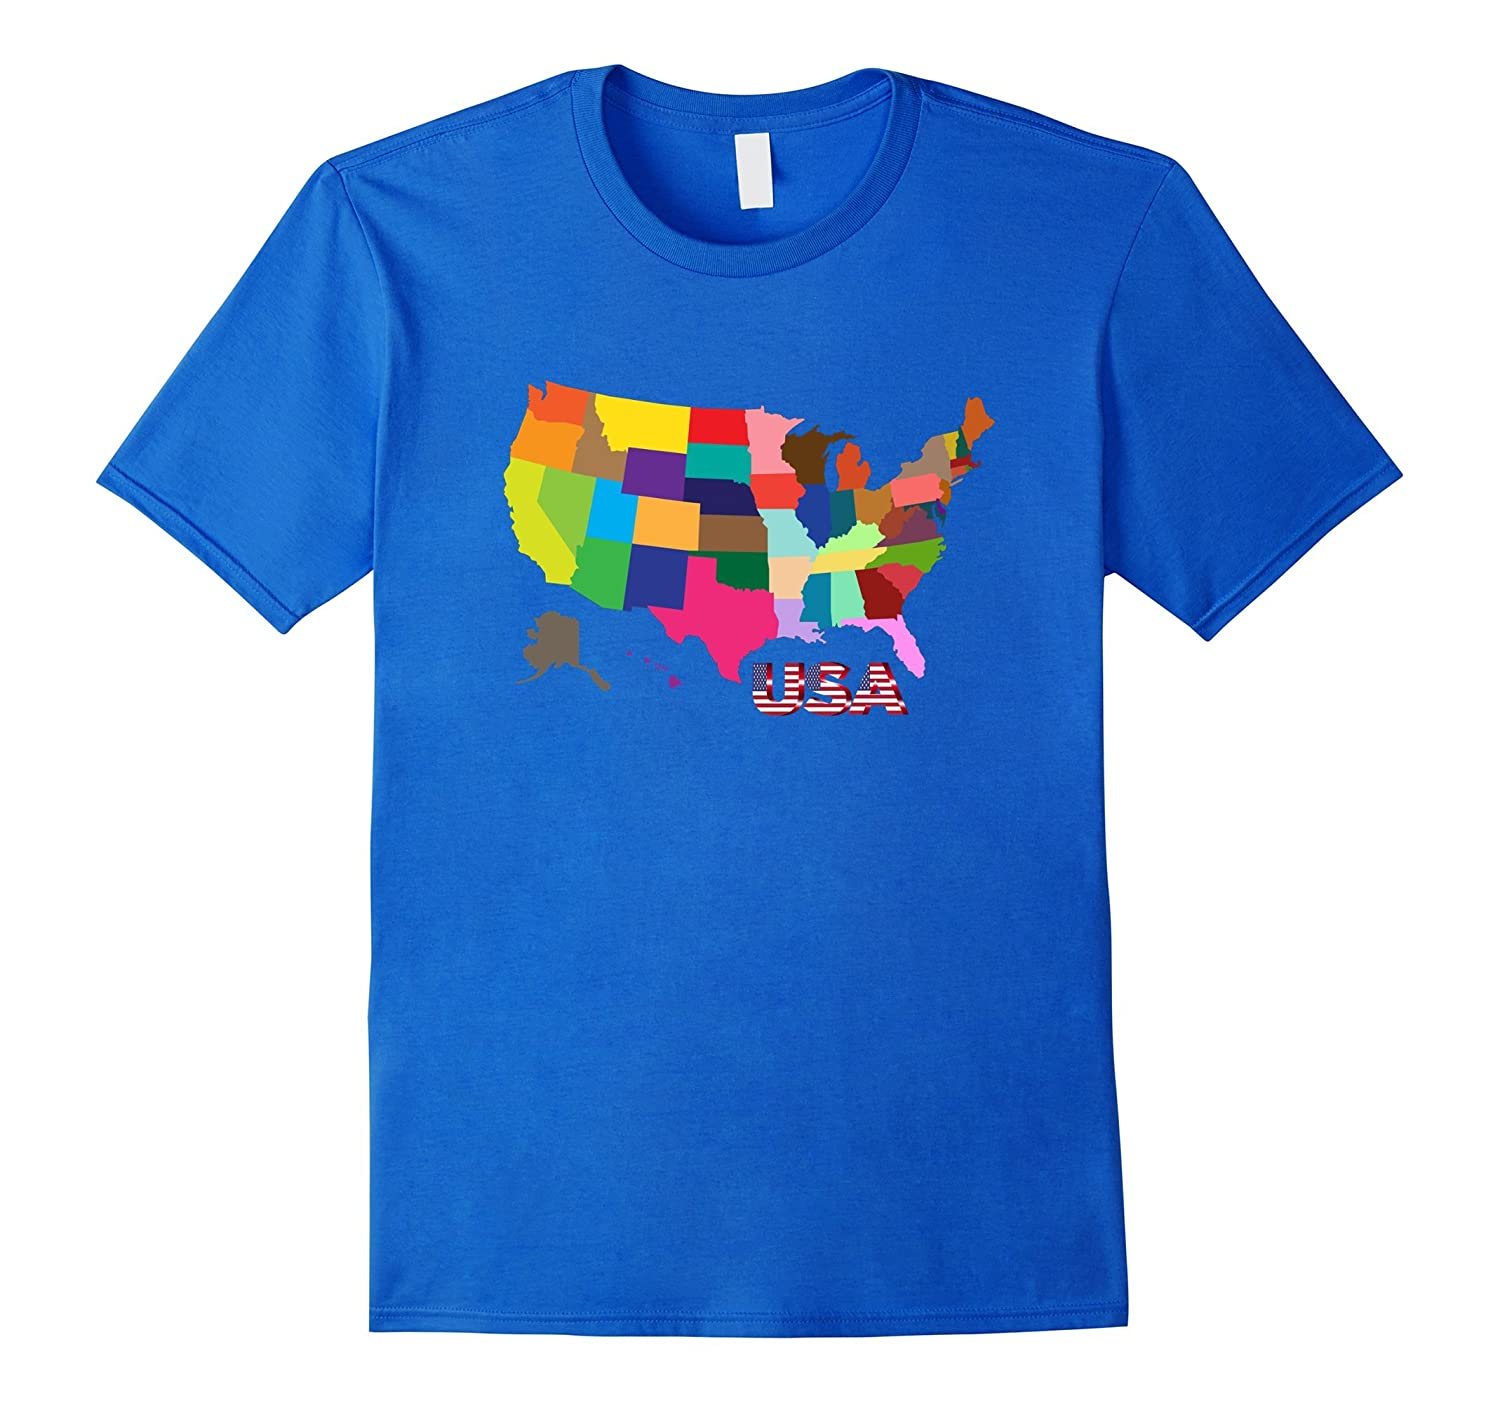 United States Map All The States Colorful USA T-Shirt -CL on miss united states, ma united states, se united states, rainbow united states, pa united states, ne united states,